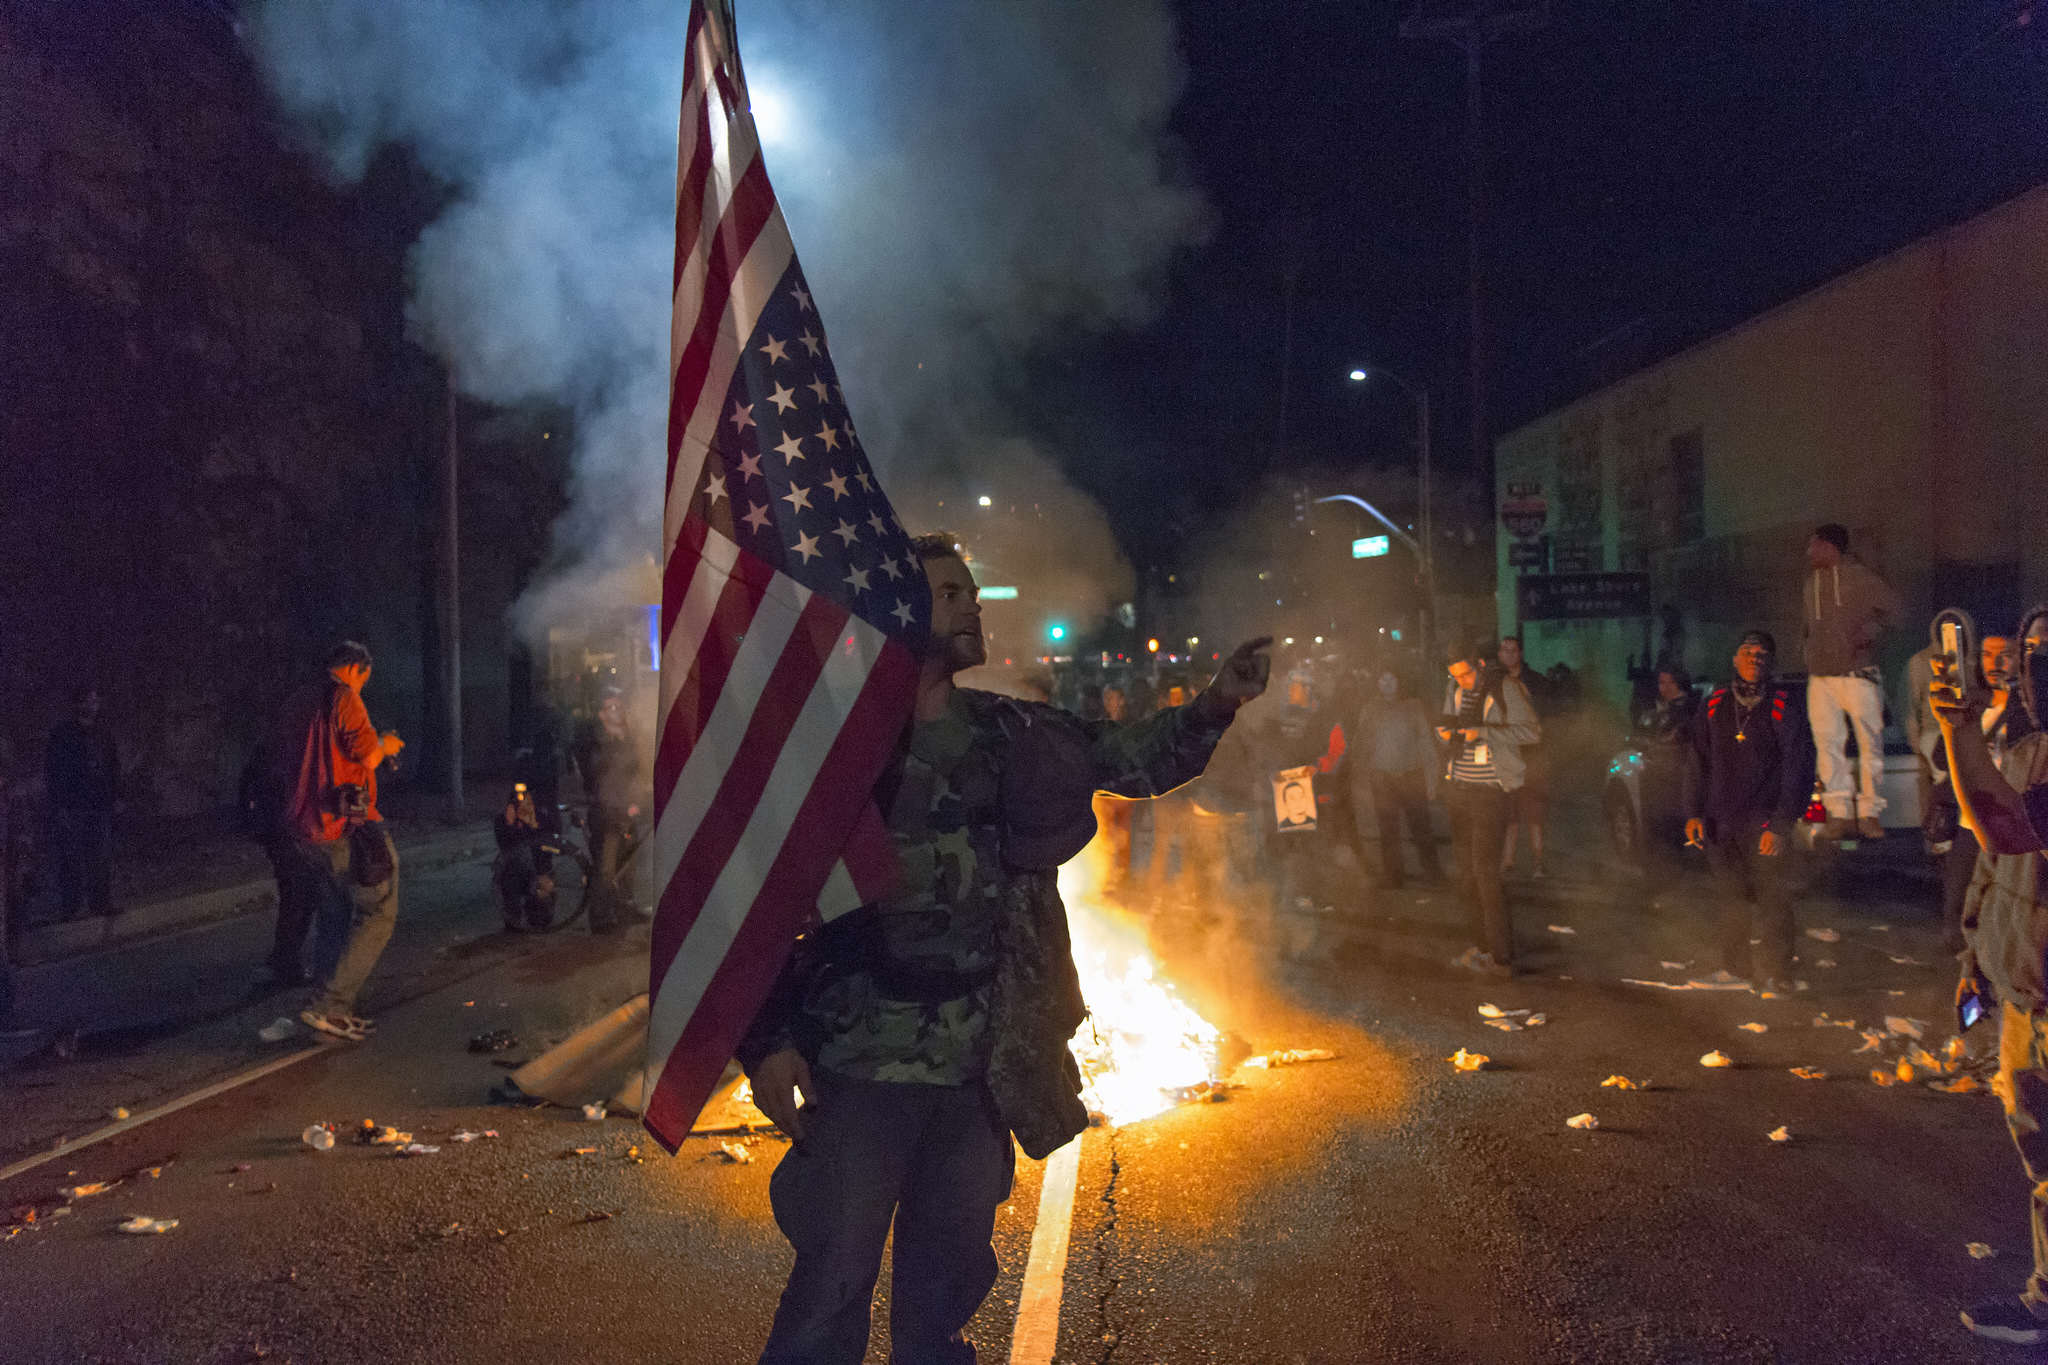 James Cartmill holds an American flag upside-down at the protest in Oakland after a freeway takeover at the Grand Avenue Exit. Protests broke out in the streets of downtown Oakland at Broadway in response to the grand jury's decision not to indict Officer Darren Wilson who shot and killed teenager Michael Brown. Monday, Nov. 24, 2014 in Oakland, Cali. Amanda Peterson/Xpress.